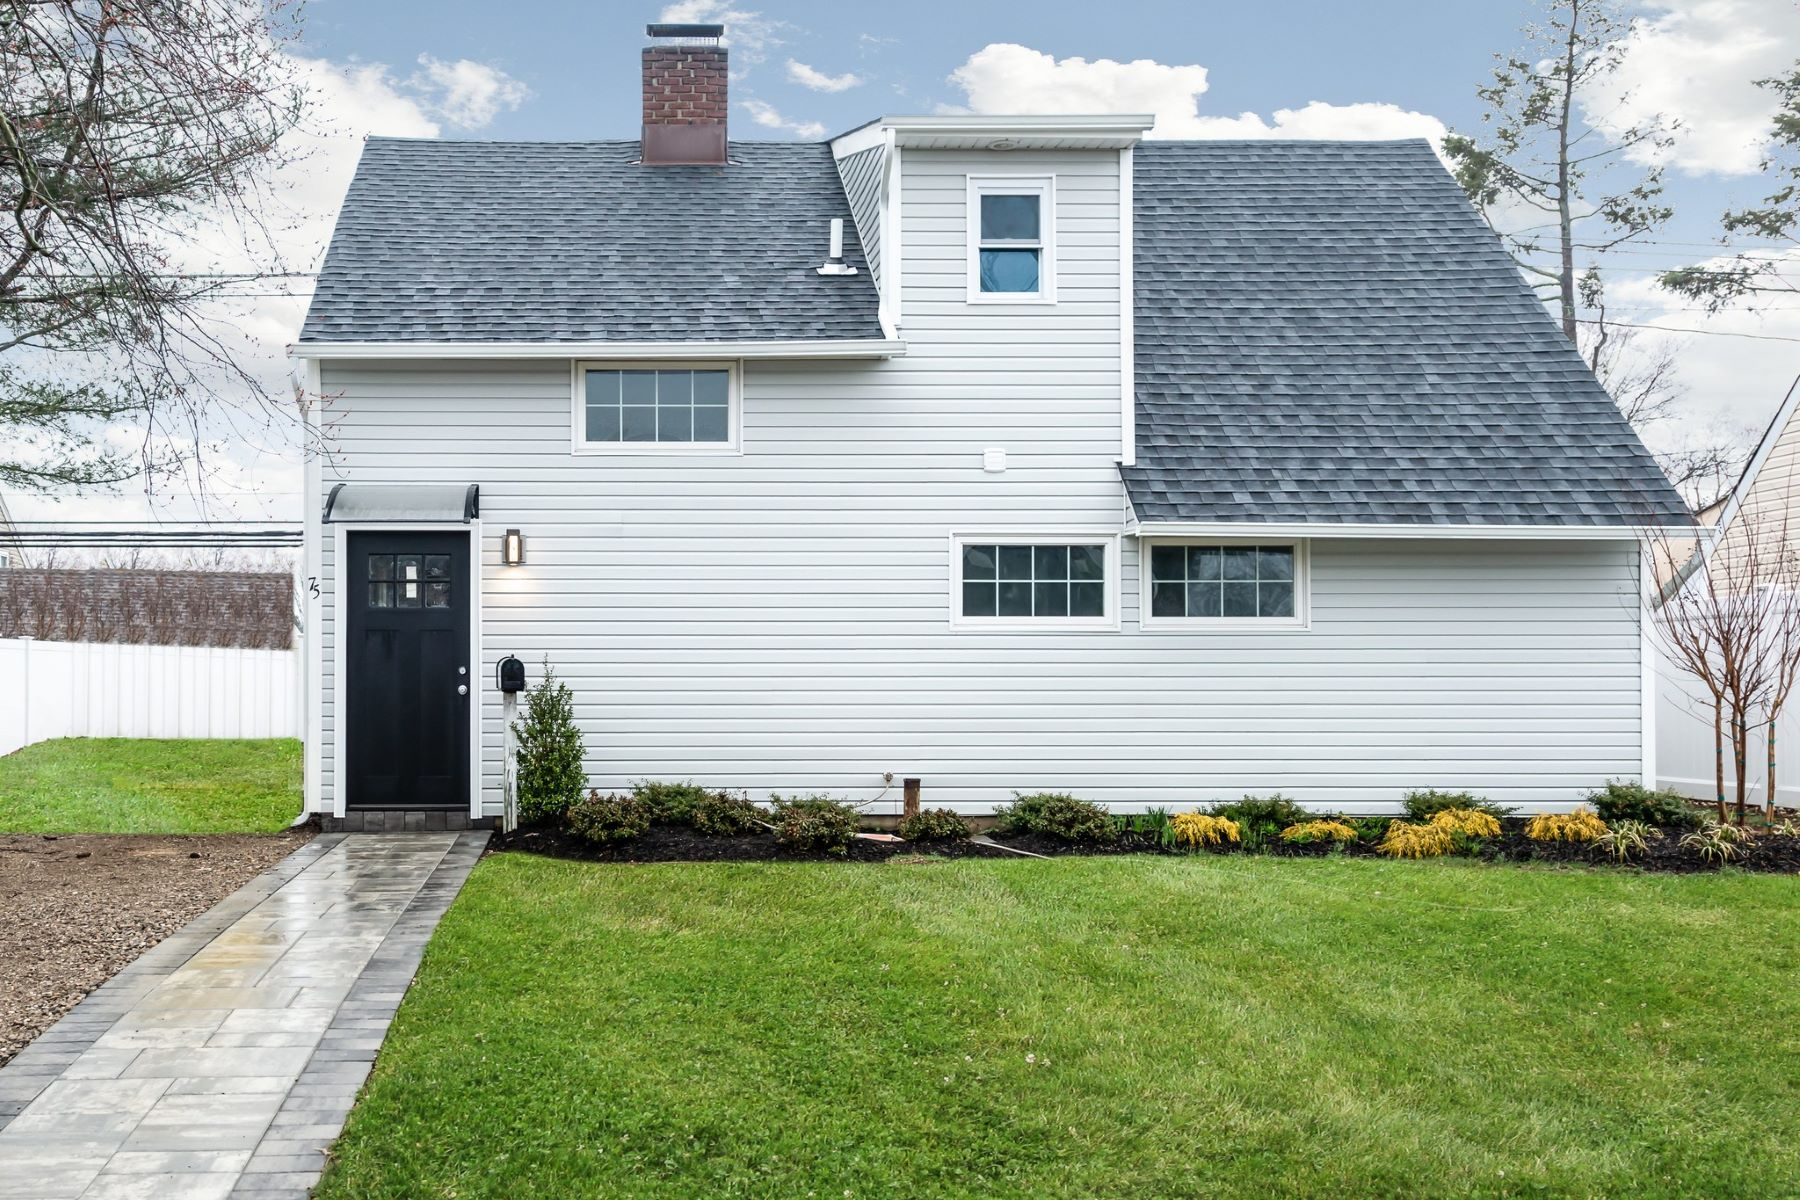 Single Family Homes for Sale at Levittown 75 Flamingo Rd. Levittown, New York 11756 United States